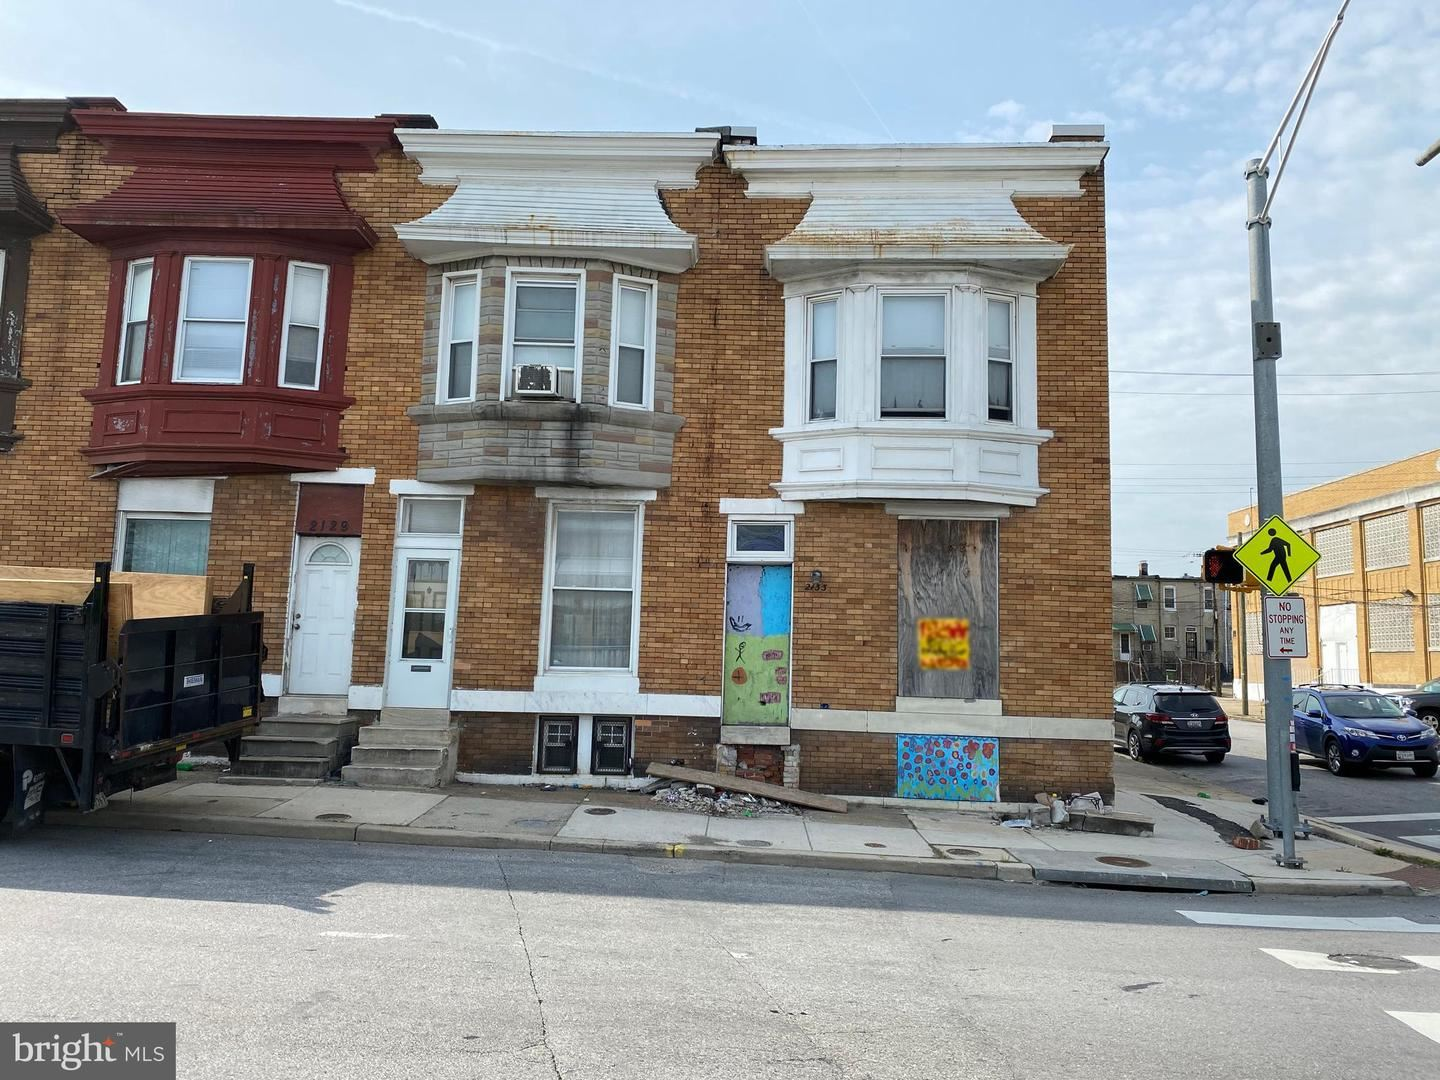 2133 W MULBERRY ST, Baltimore, MD 21223 - MLS#: MDBA550028